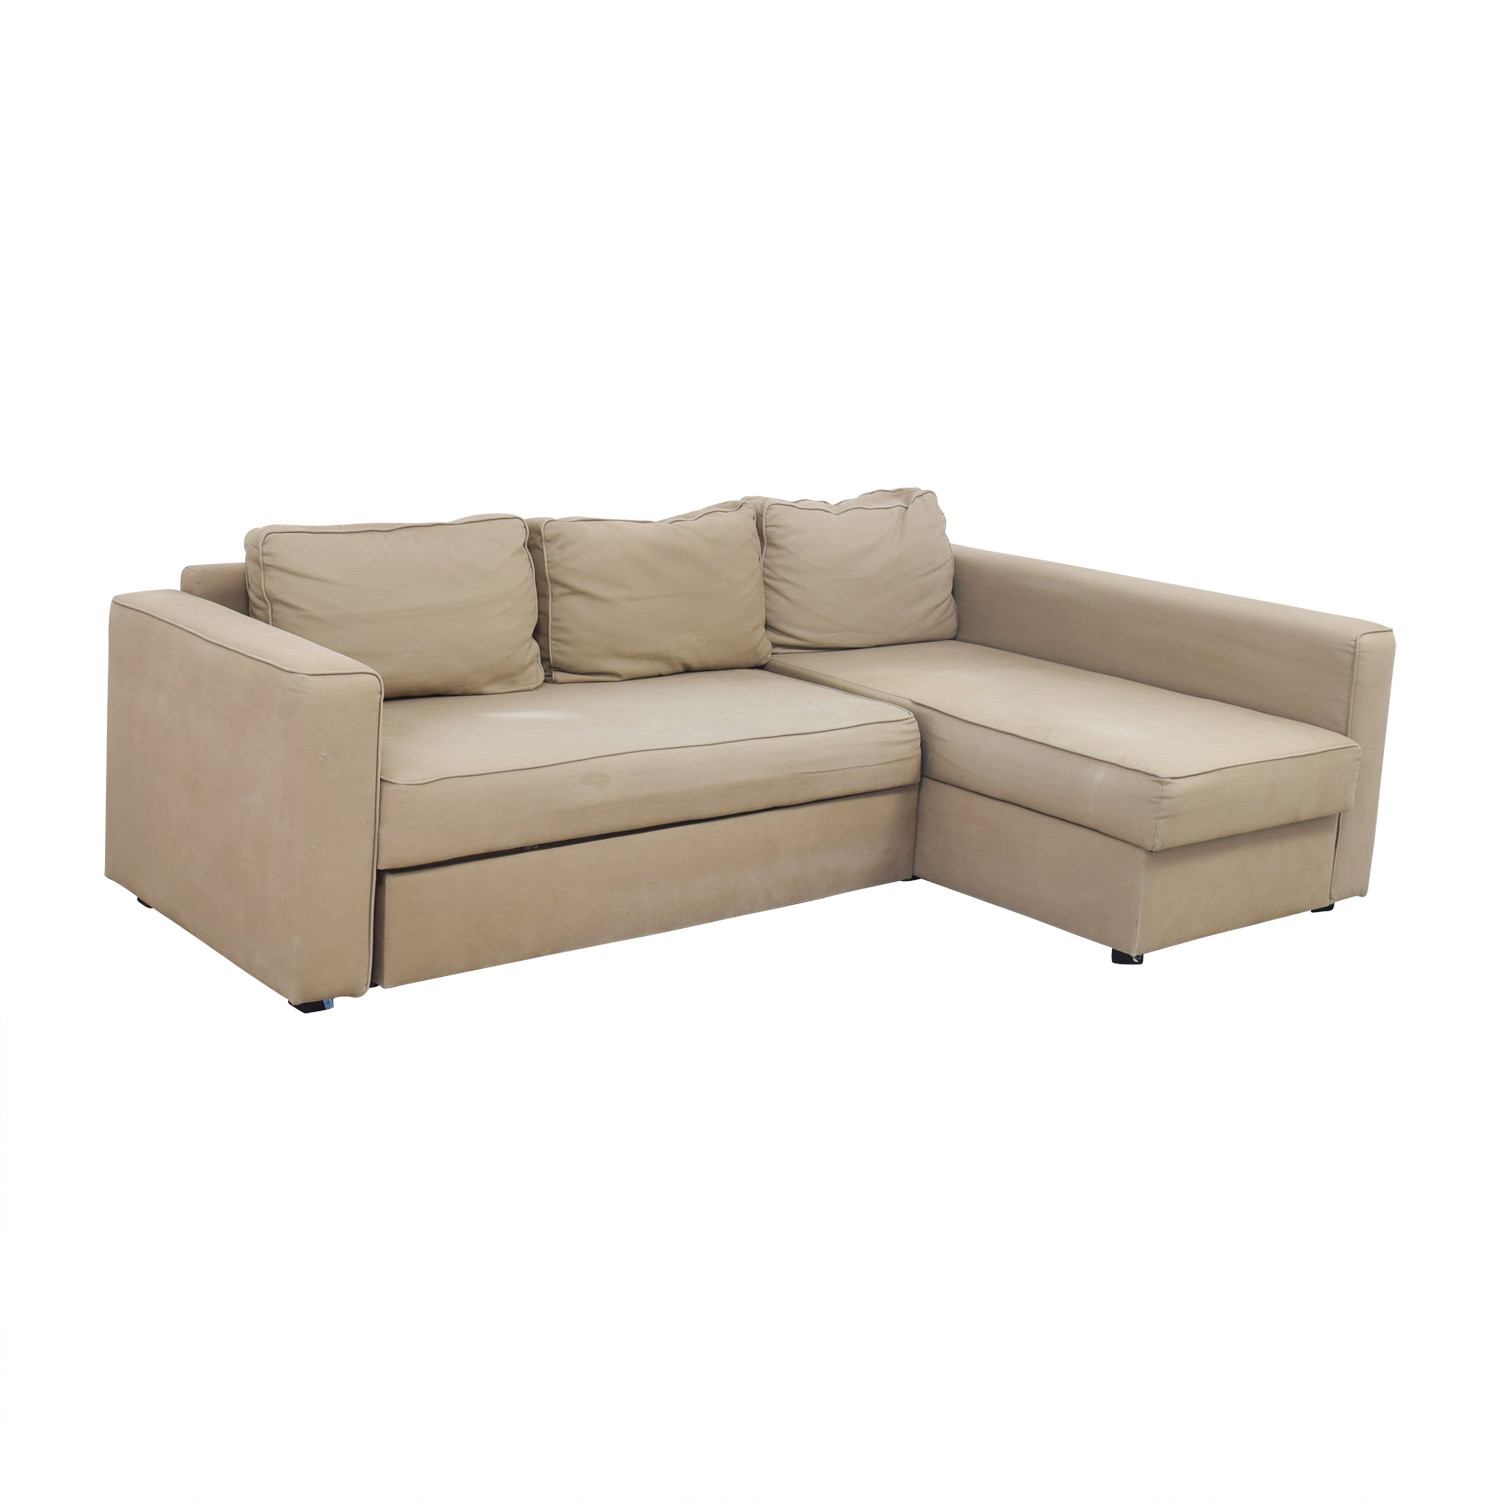 Best ideas about Ikea Sectional Sofa . Save or Pin OFF IKEA IKEA Manstad Sectional Sofa Bed with Now.